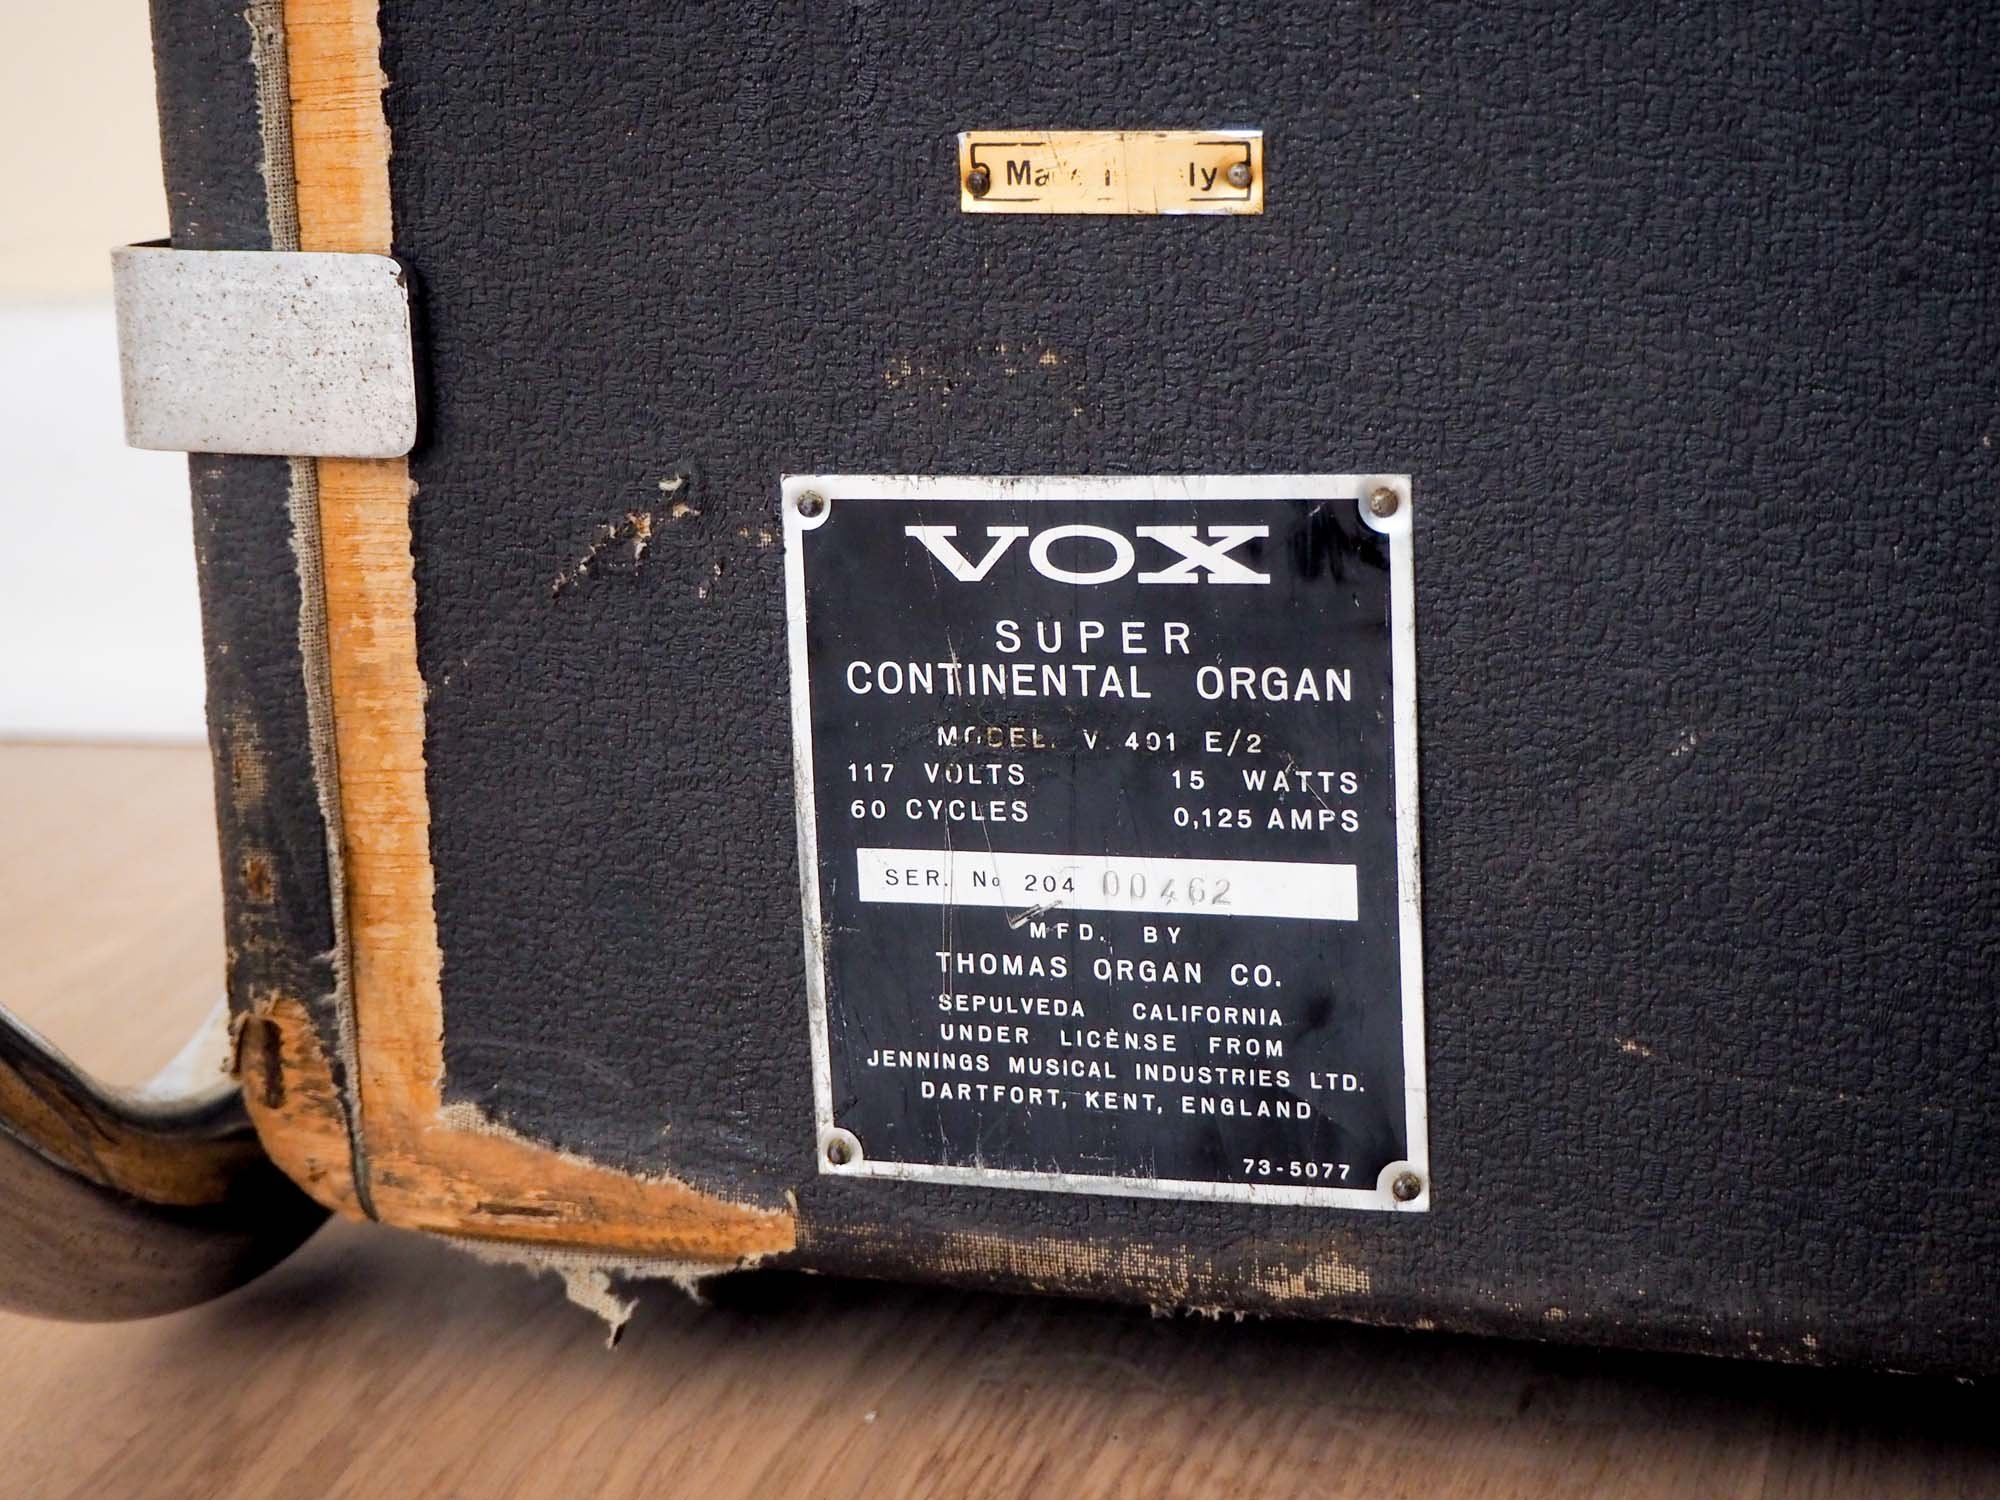 1967 Vox Super Continental Vintage Dual Manual Combo Organ V401 E/2 w/ Z Legs & Case, Serviced